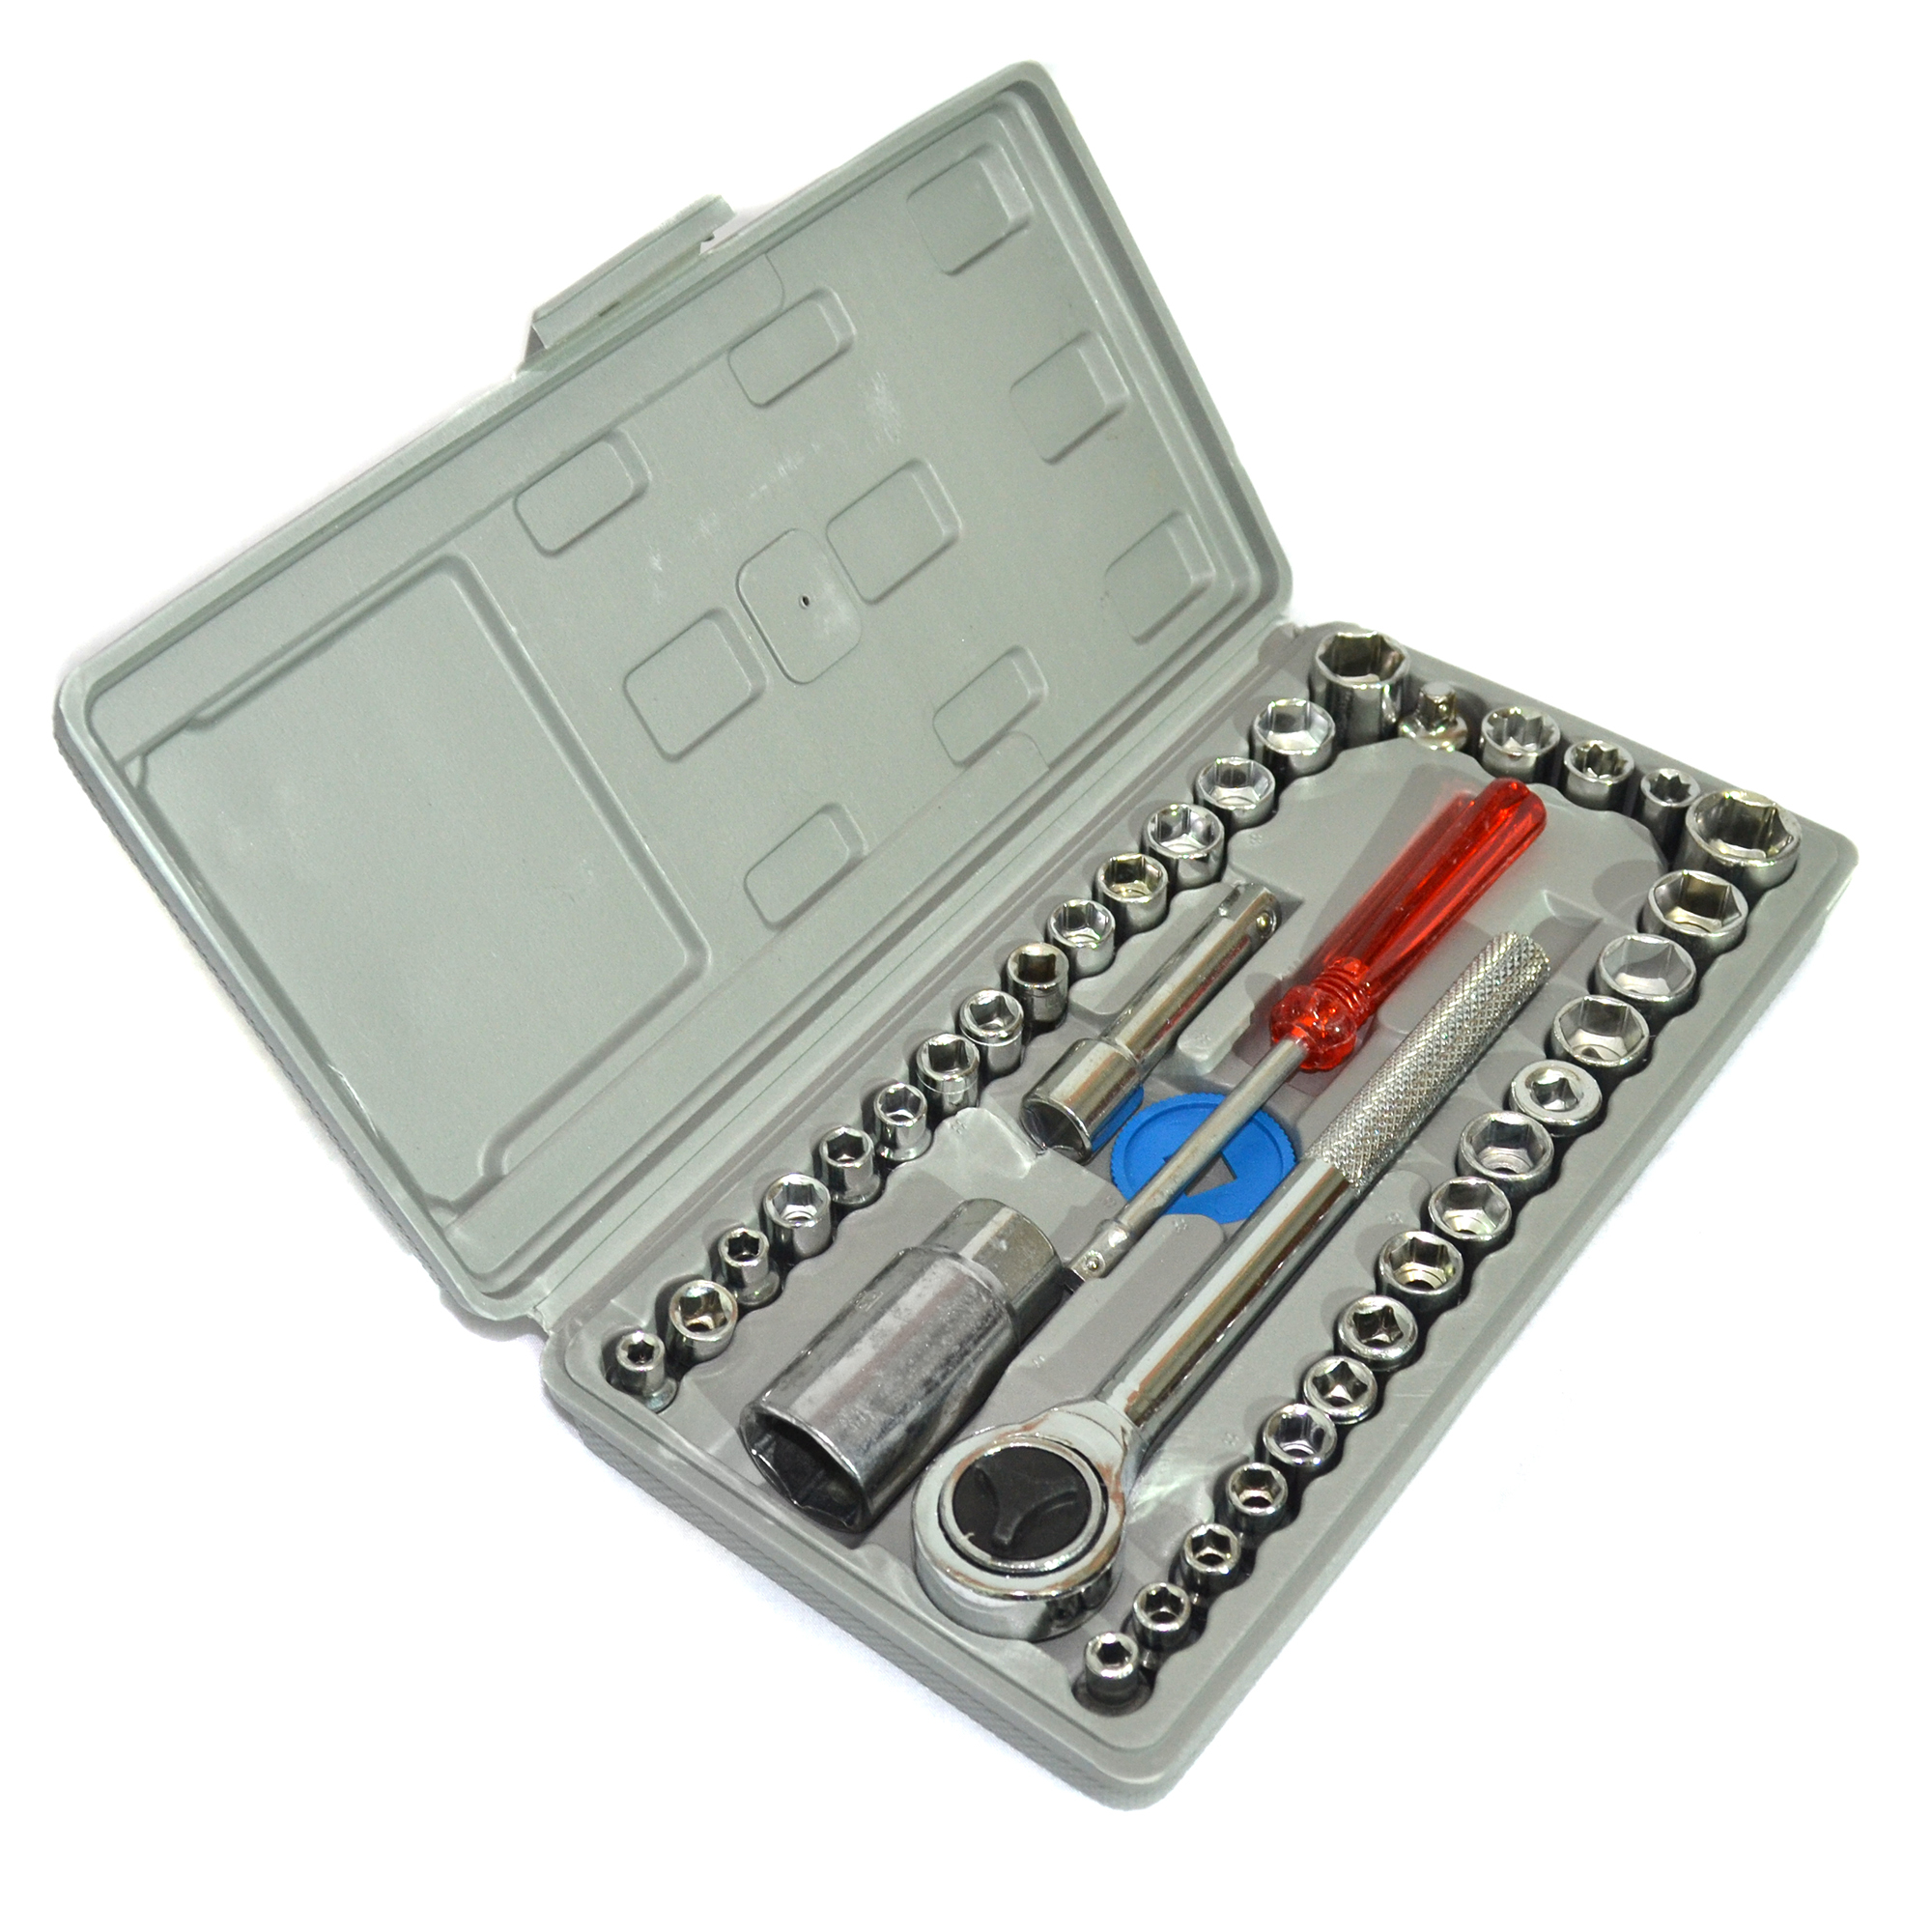 Fix Every Thing With AIWA 40 PCS. TOOL SET